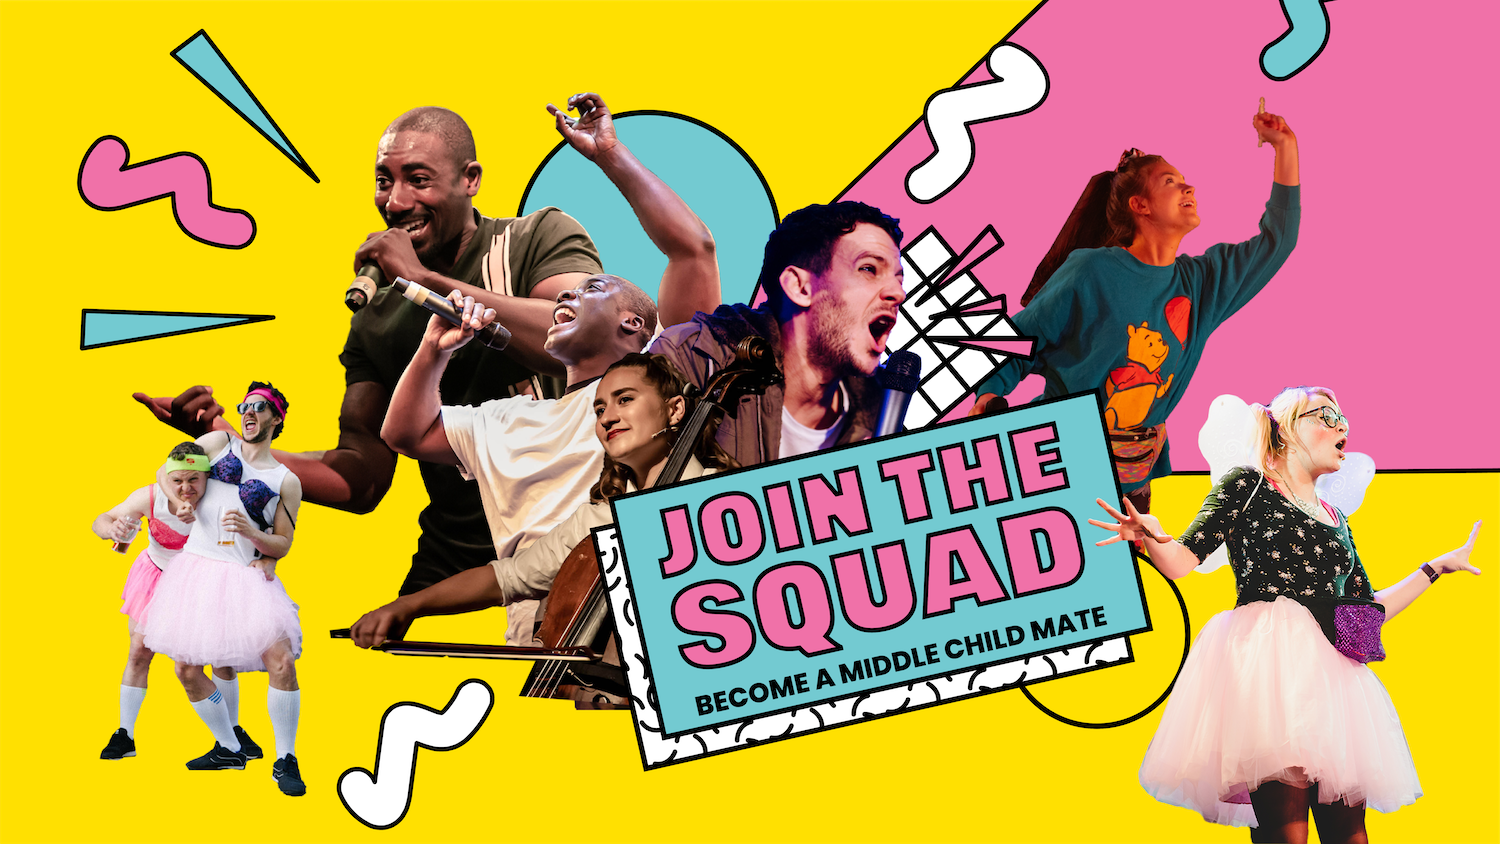 Cut outs of performers from past Middle Child shows on a 90s style yellow and pink background. Text: Join the Squad, become a Middle Child Mate (supporters scheme)